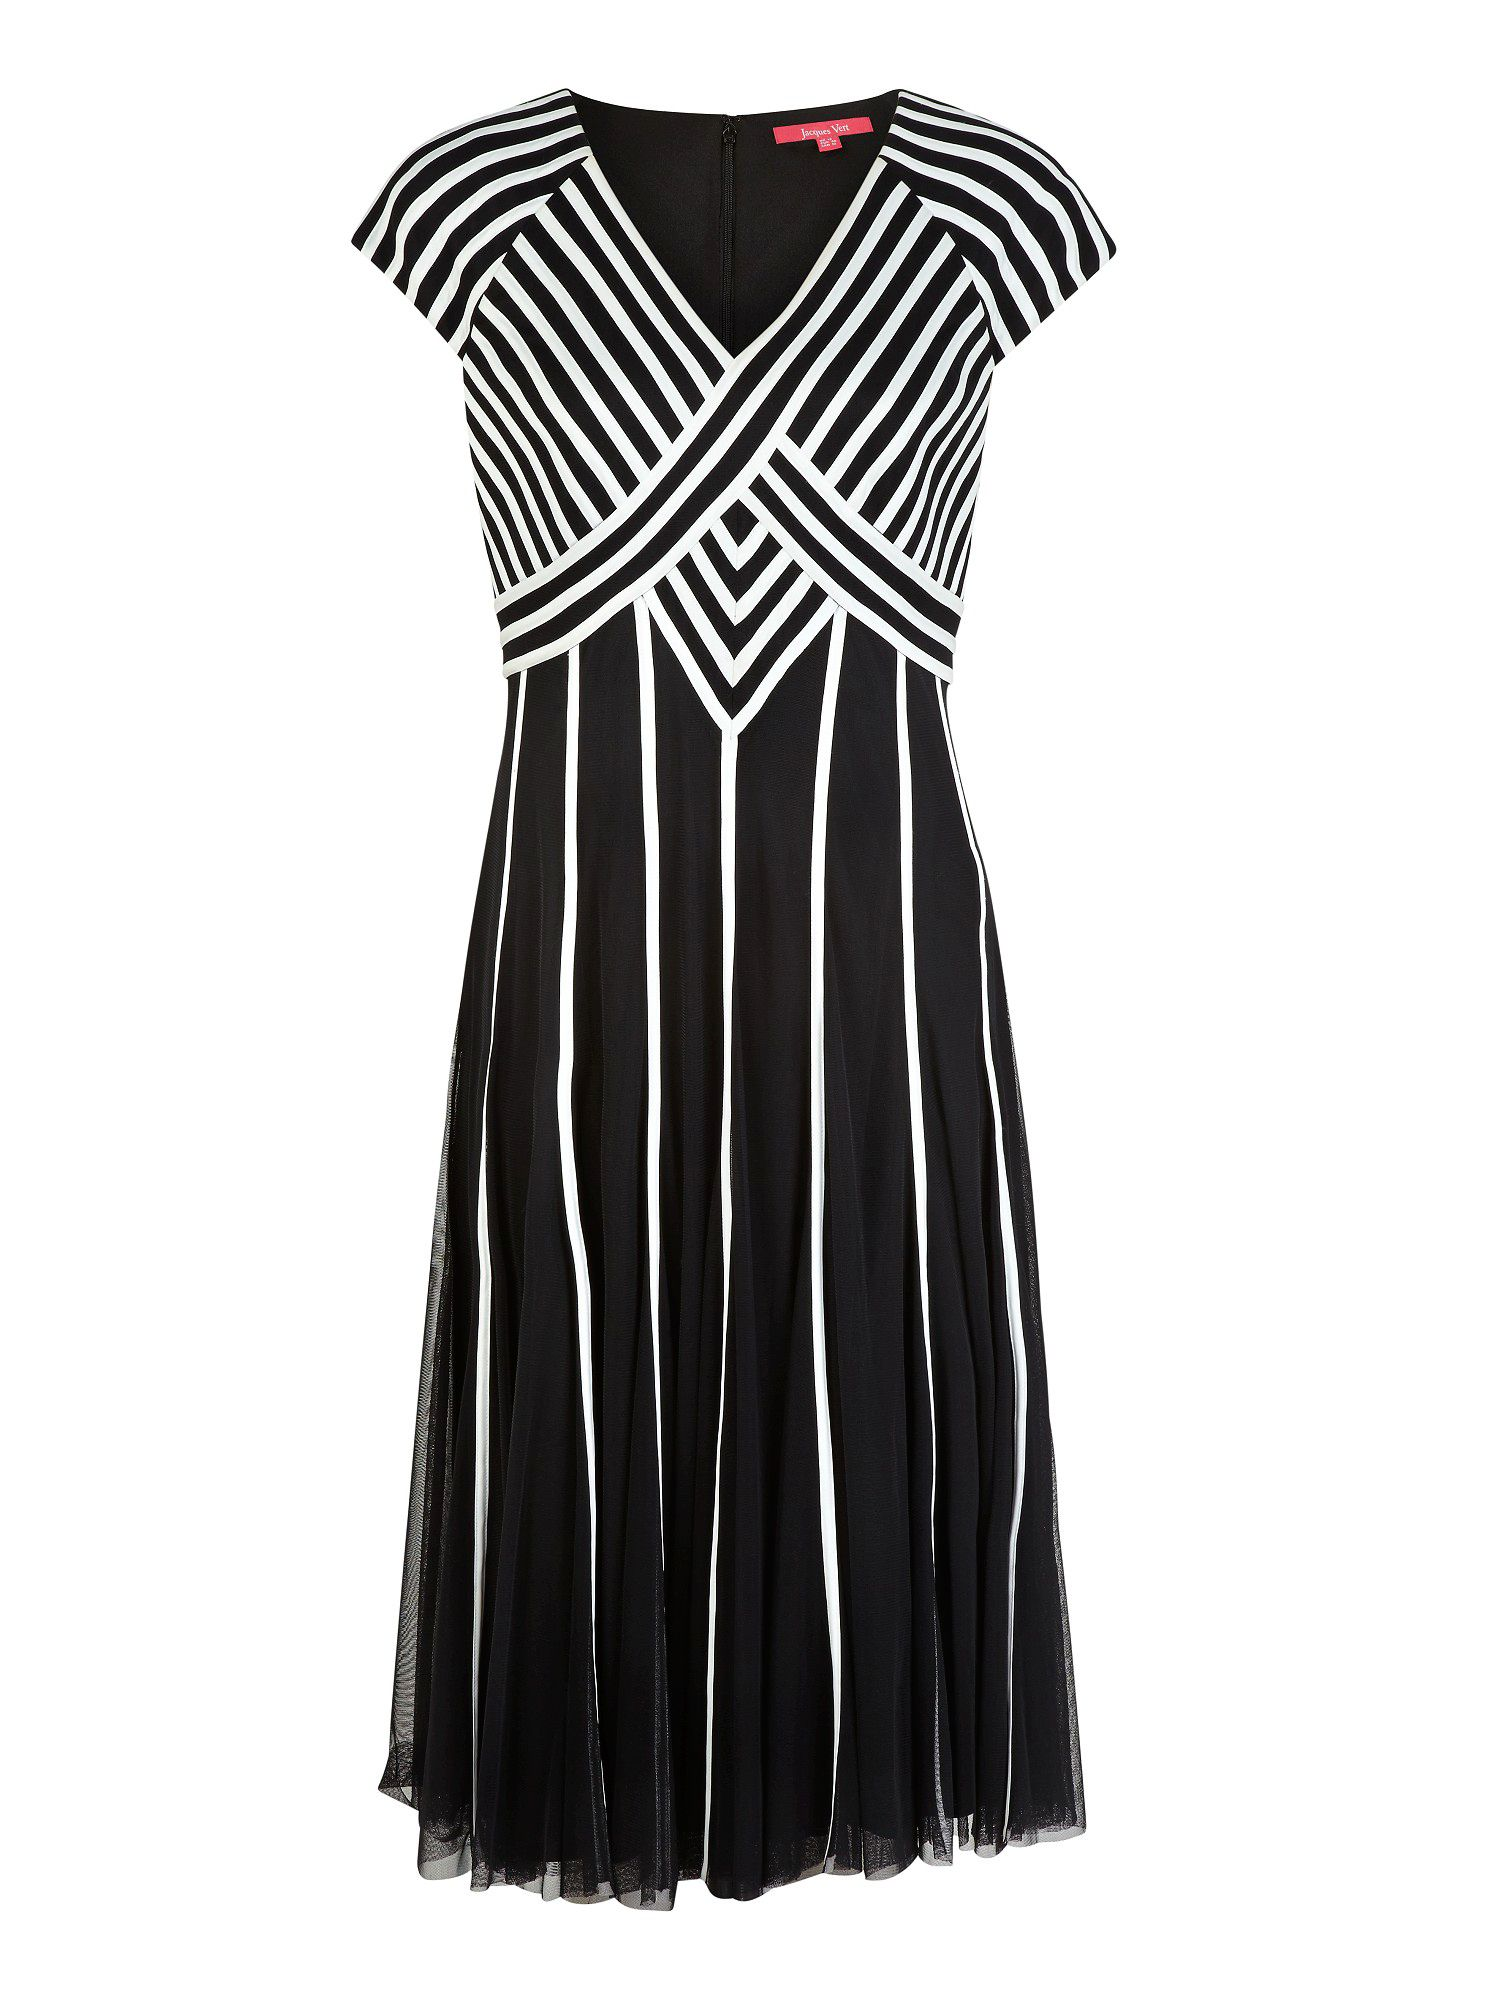 Monochrome Short Sleeve Banded Dress